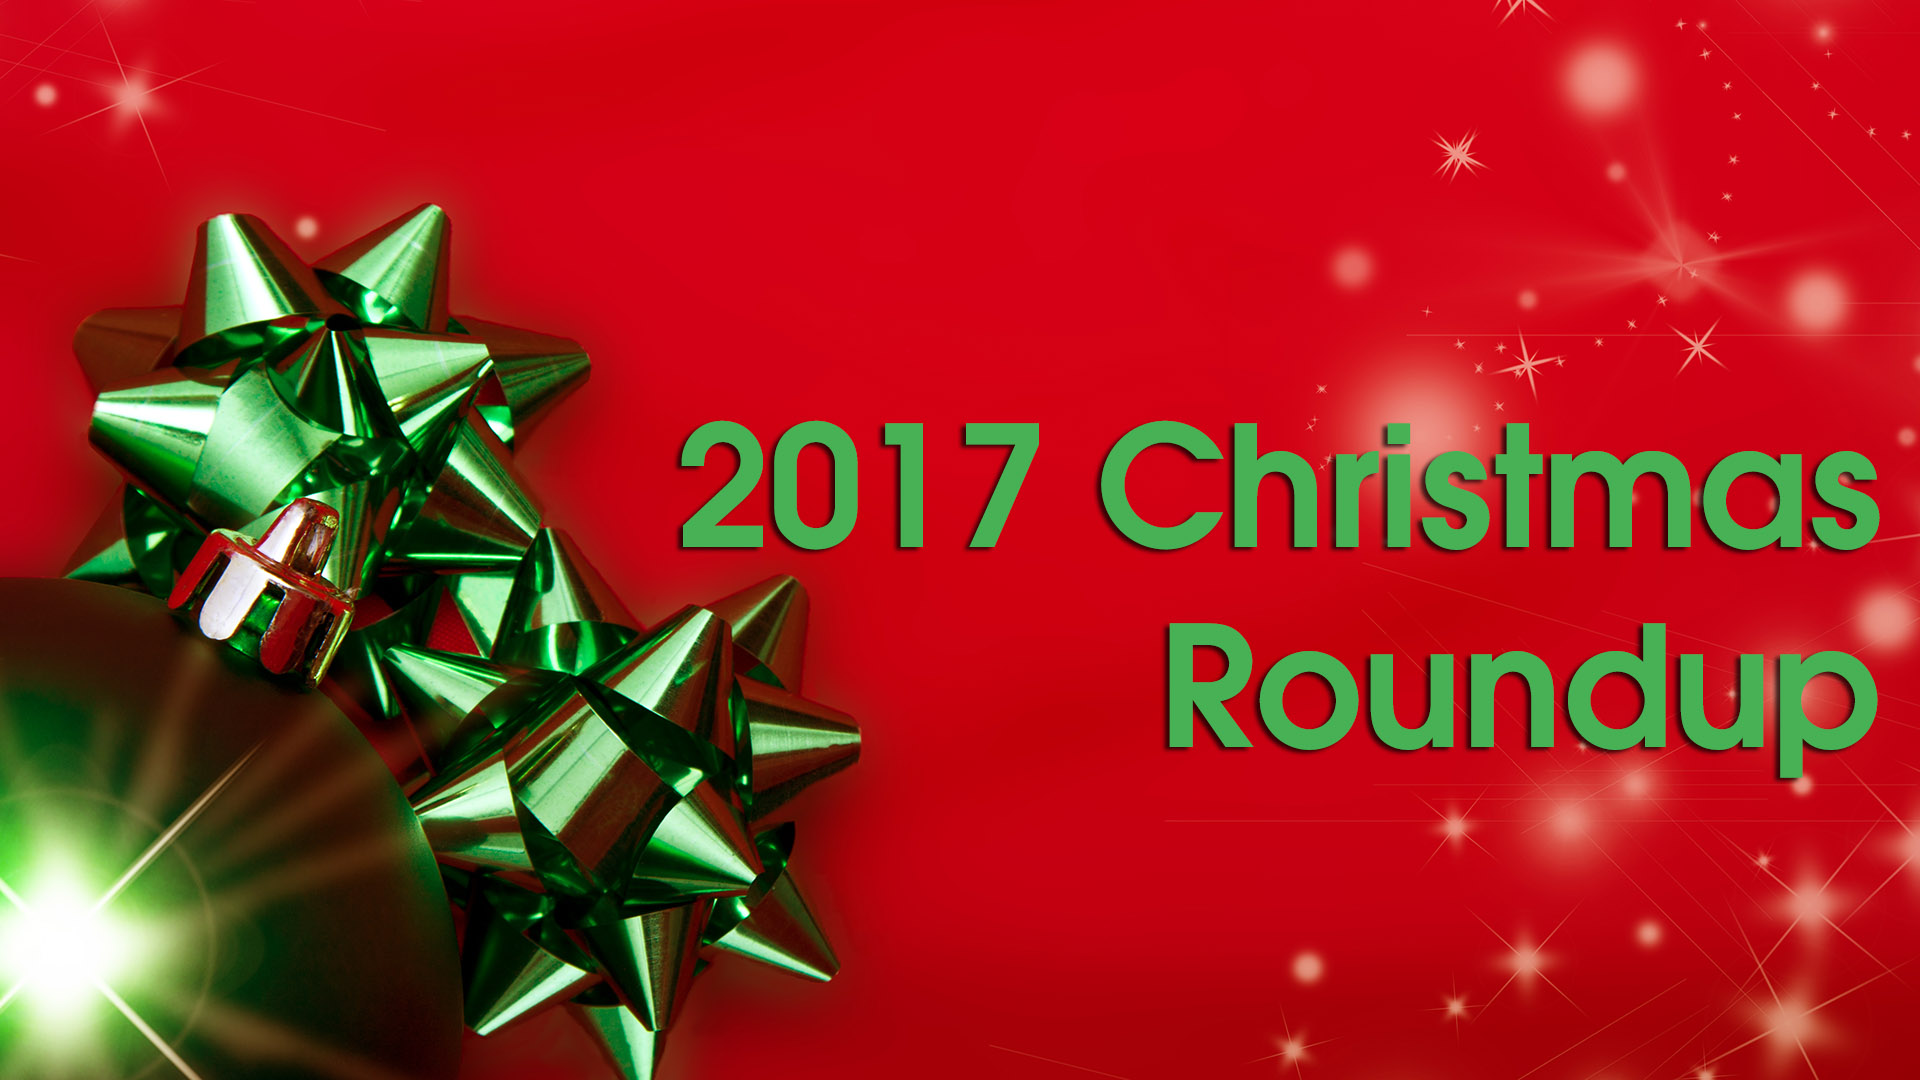 Christmas Roundup 2017: Your daily guide to holiday events for the entire season